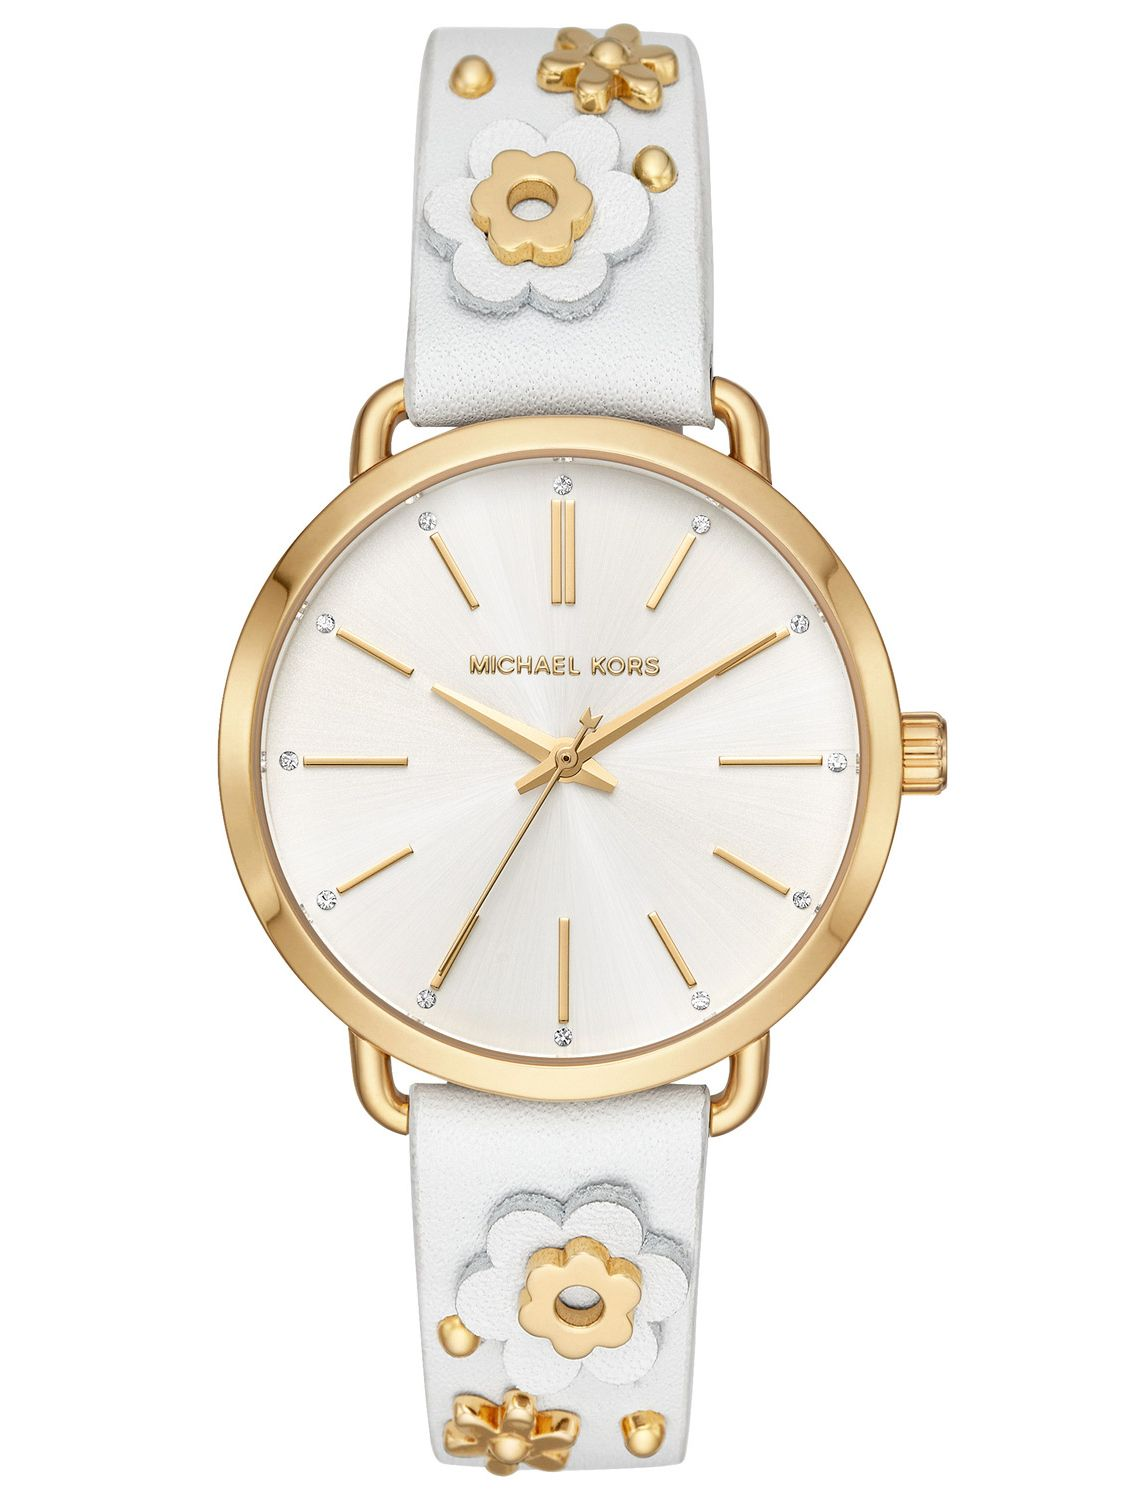 aef72ef0c321 MICHAEL KORS Ladies Watch Portia MK2737 • uhrcenter